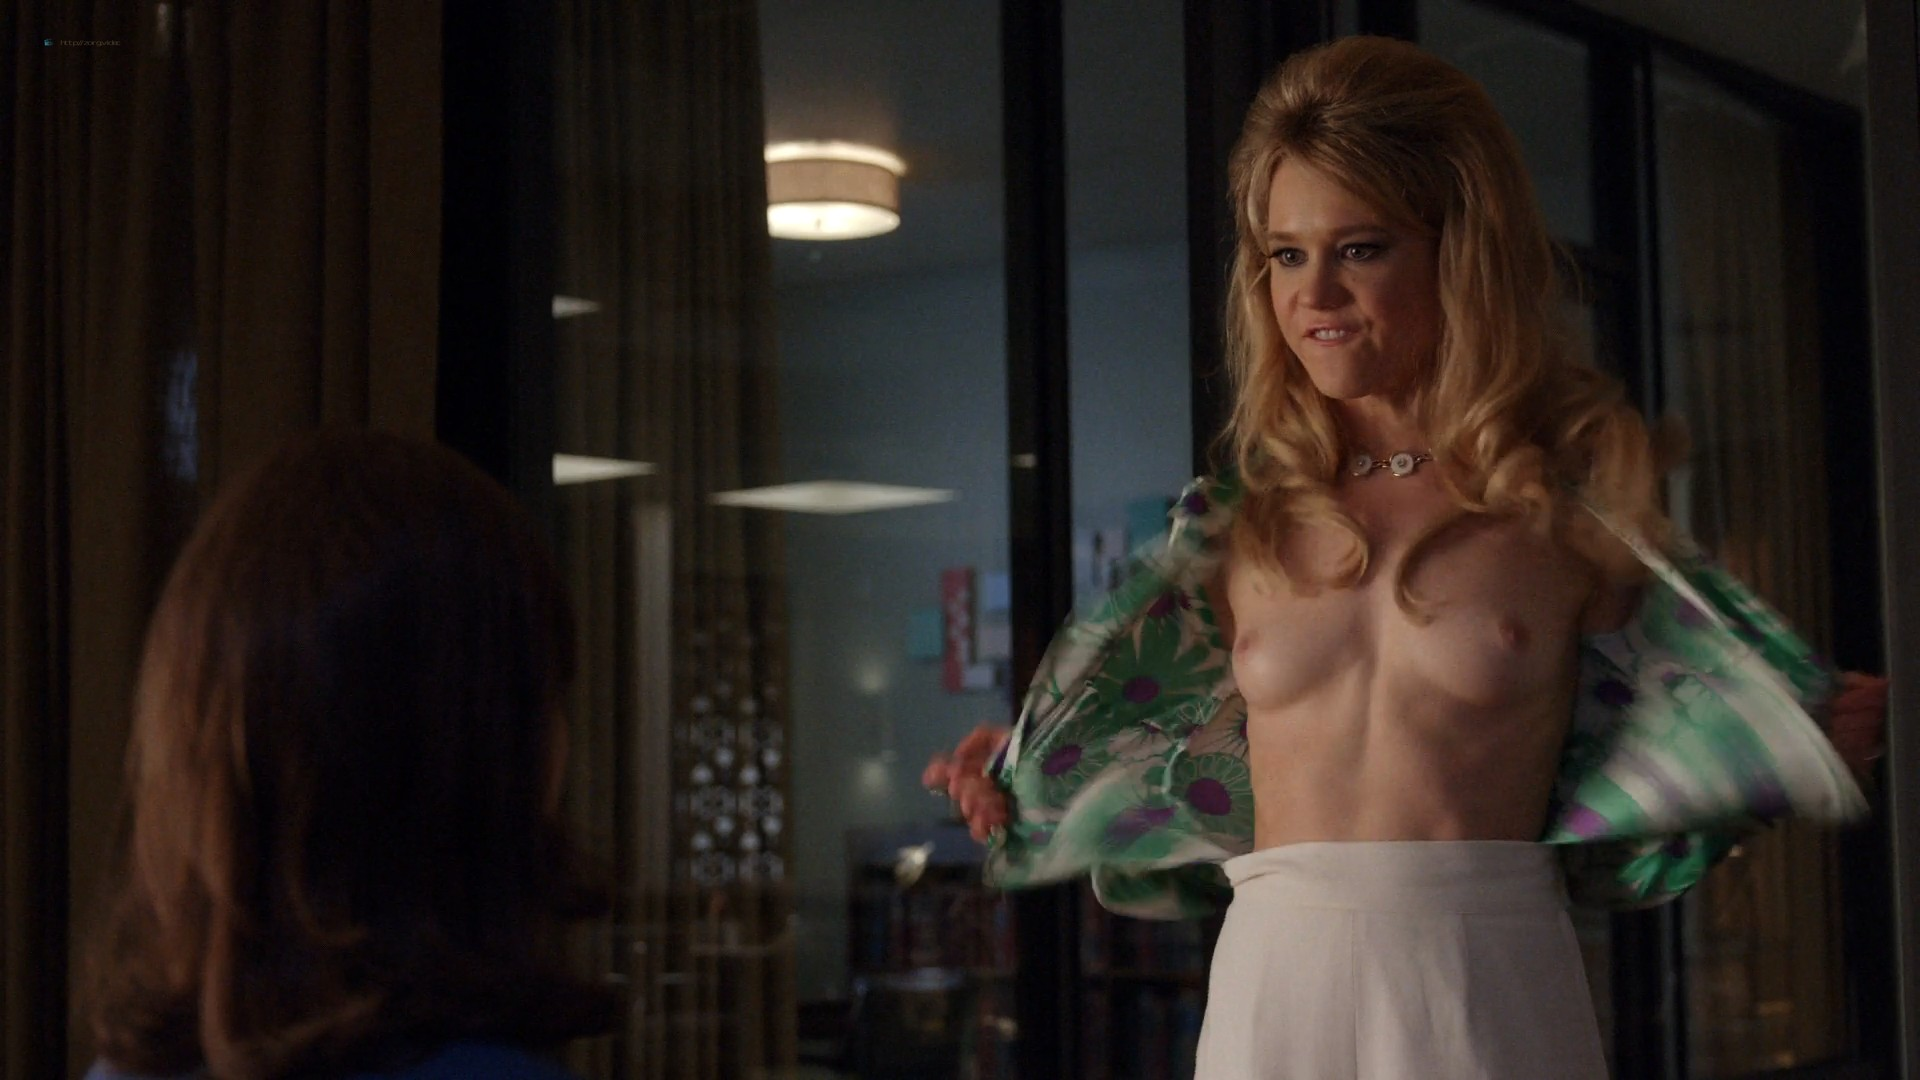 Kristen Hager nude boobs and butt naked - Masters of Sex (2015) s3e6 HD 1080p (10)